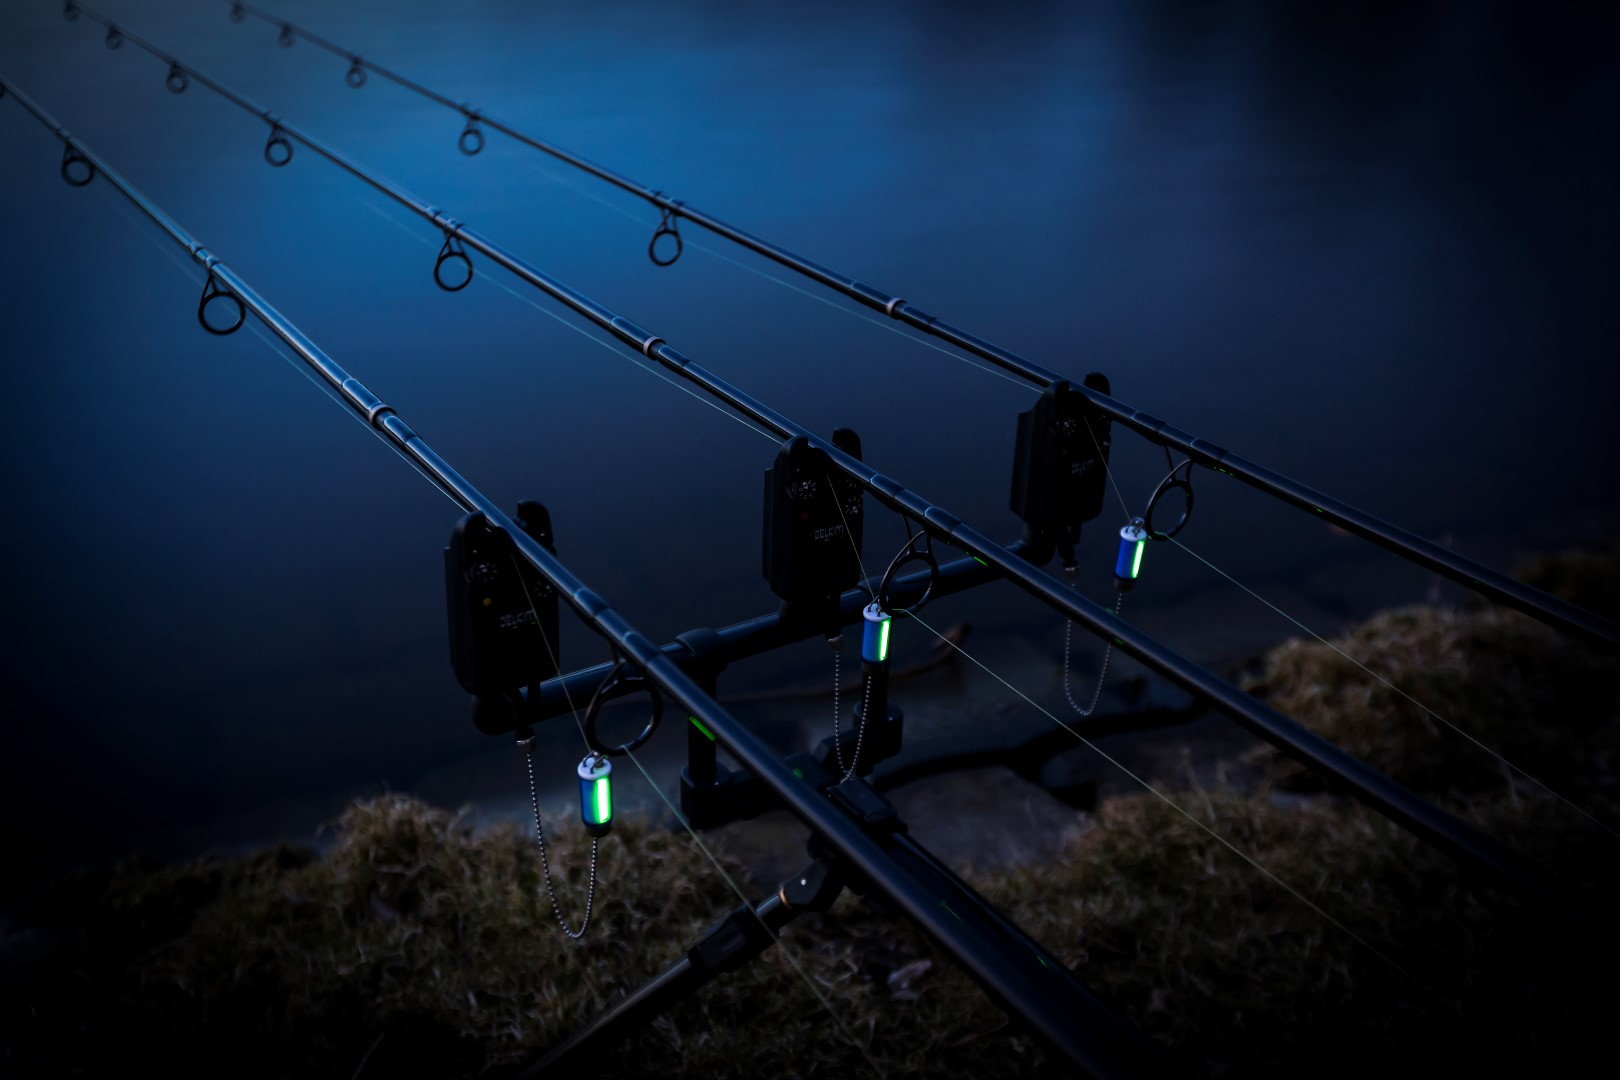 Night fishing with three rods